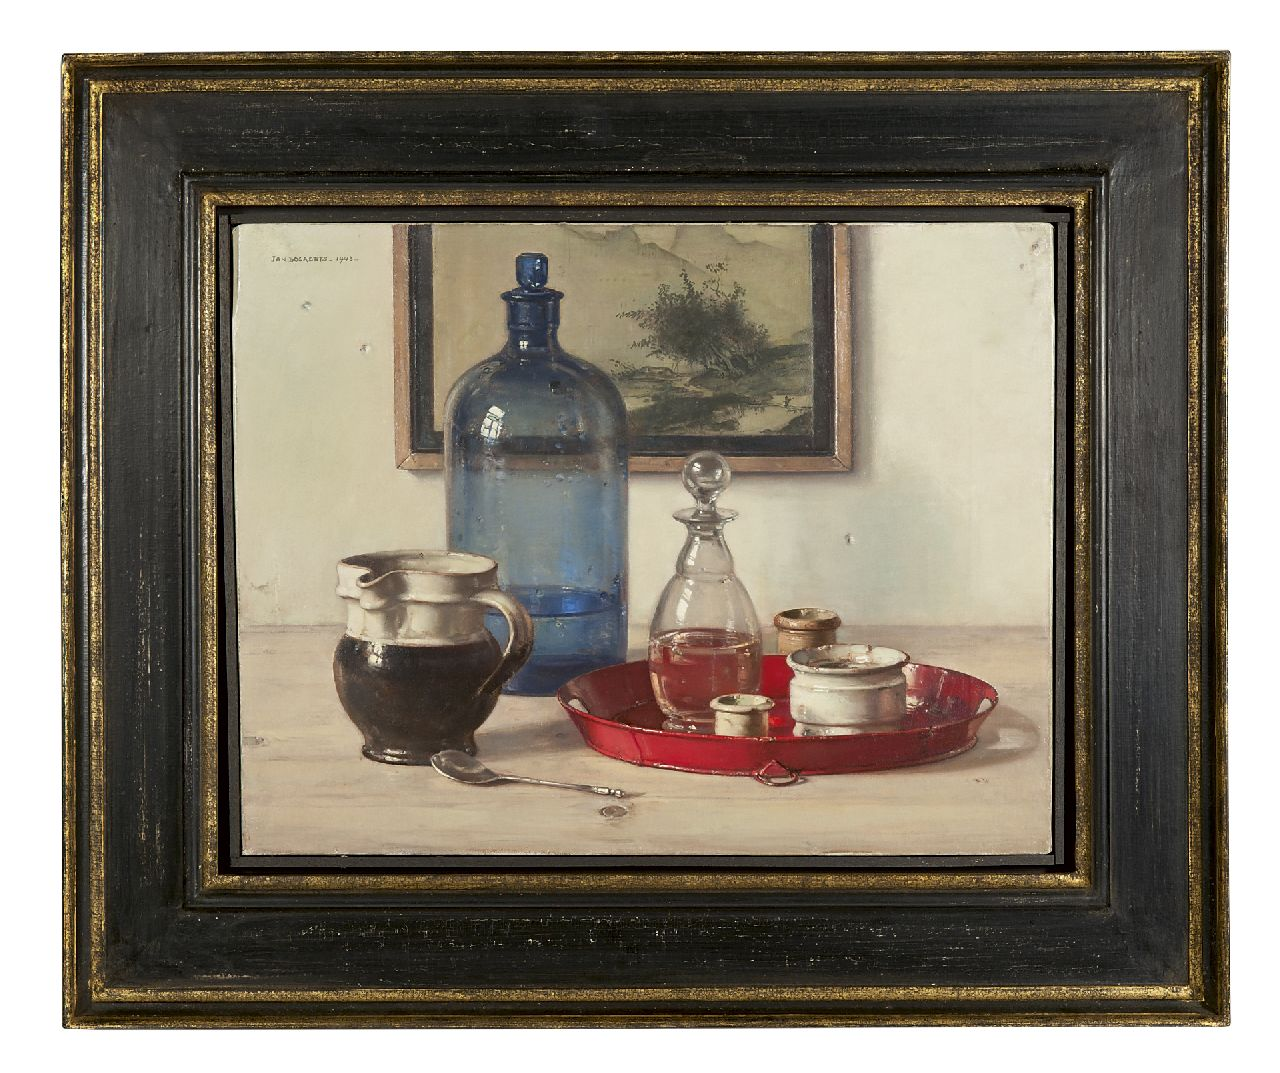 Bogaerts J.J.M.  | Johannes Jacobus Maria 'Jan' Bogaerts | Paintings offered for sale | Still life with blue bottle and jars, oil on canvas 34.7 x 45.4 cm, signed u.l. and dated 1943